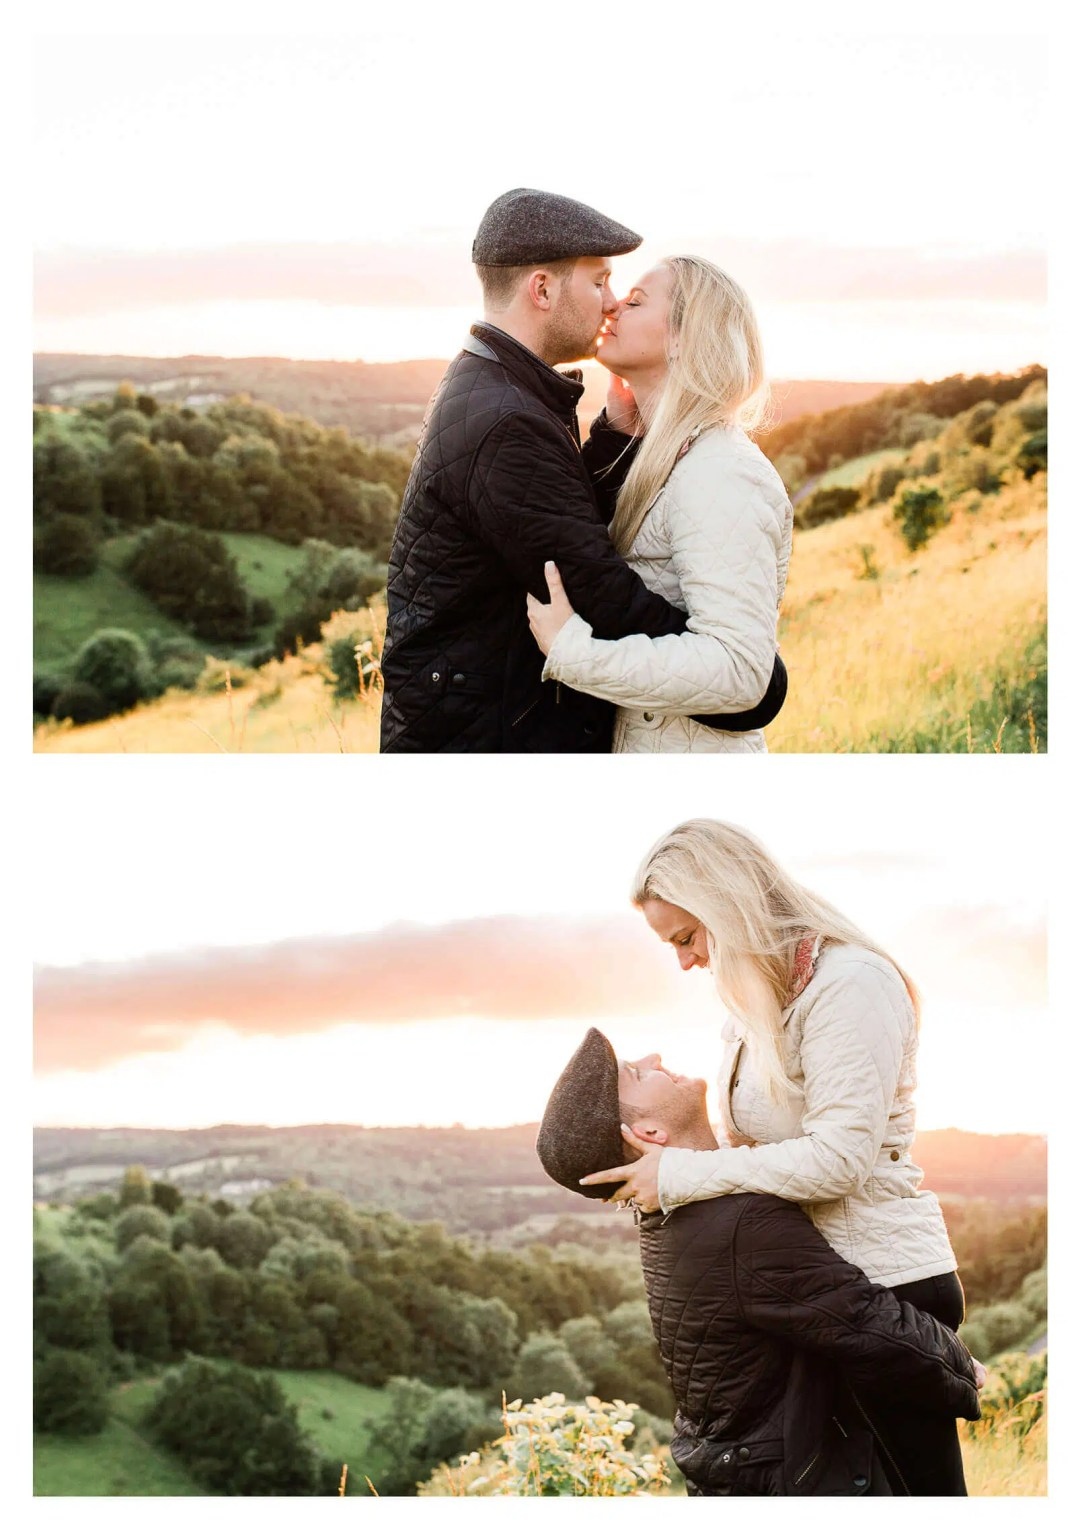 North Downs Box Hill engagement shoot at sunset | Surrey pre-wedding photographer-